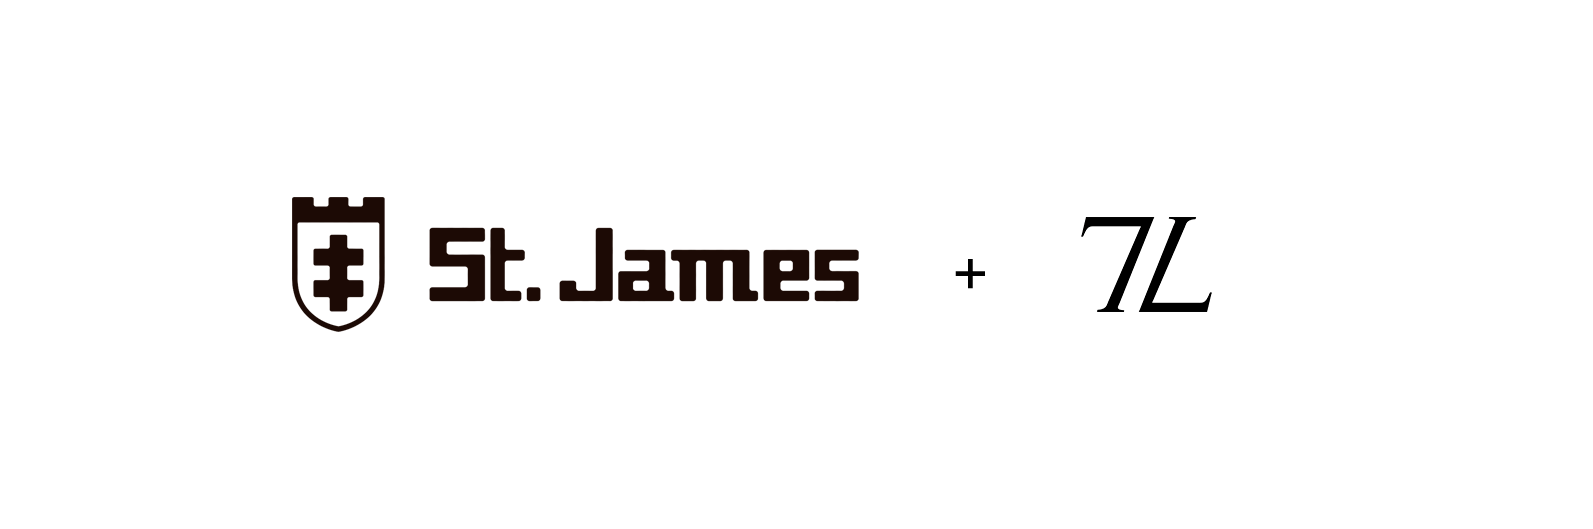 logo-st-james+sette7.png